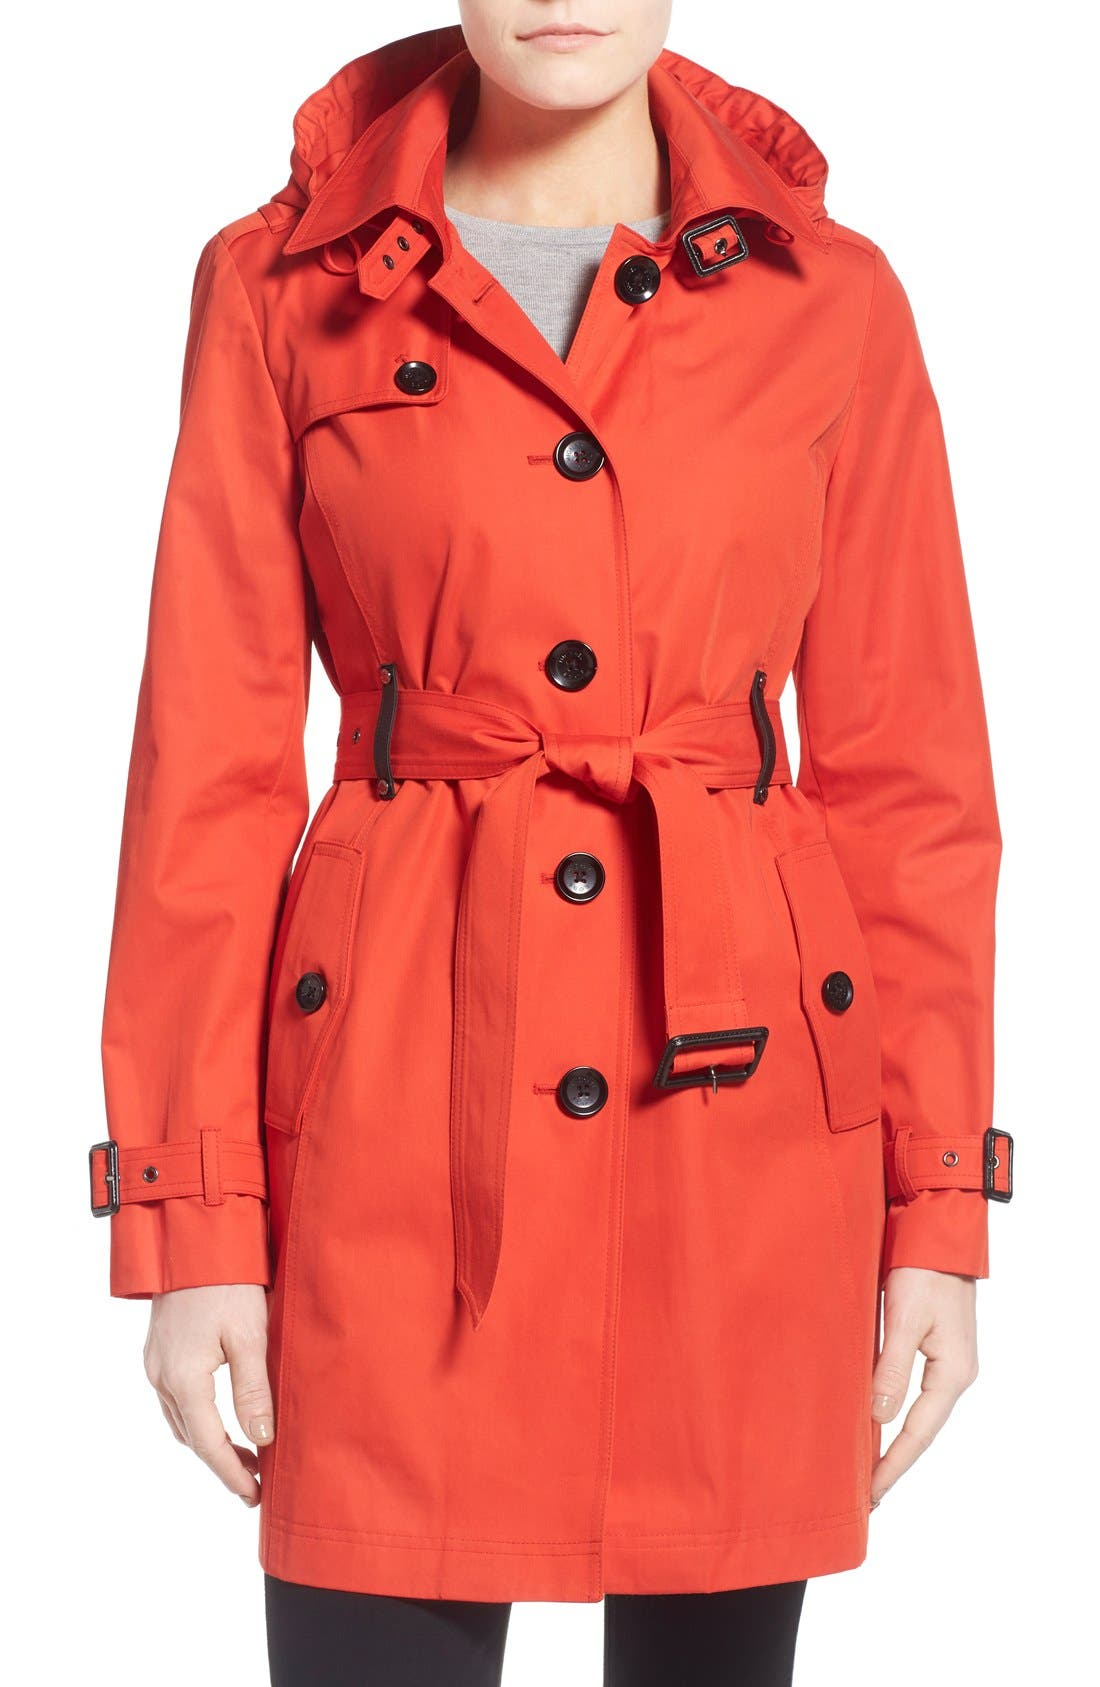 Alternate Image 1 Selected - MICHAEL Michael Kors Single Breasted Raincoat (Regular & Petite)